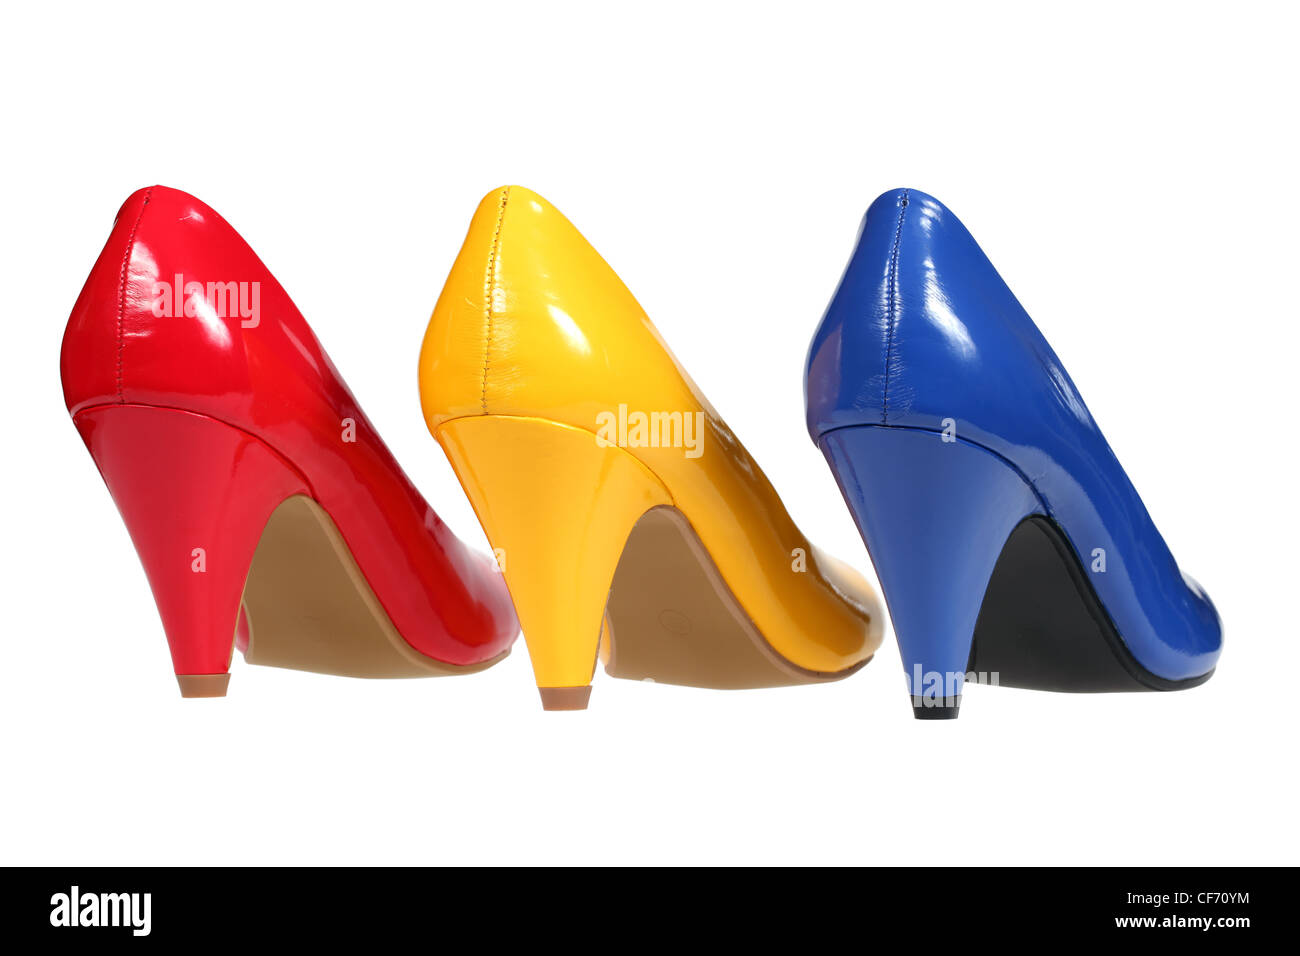 Colorful women's shoes heels - Stock Image